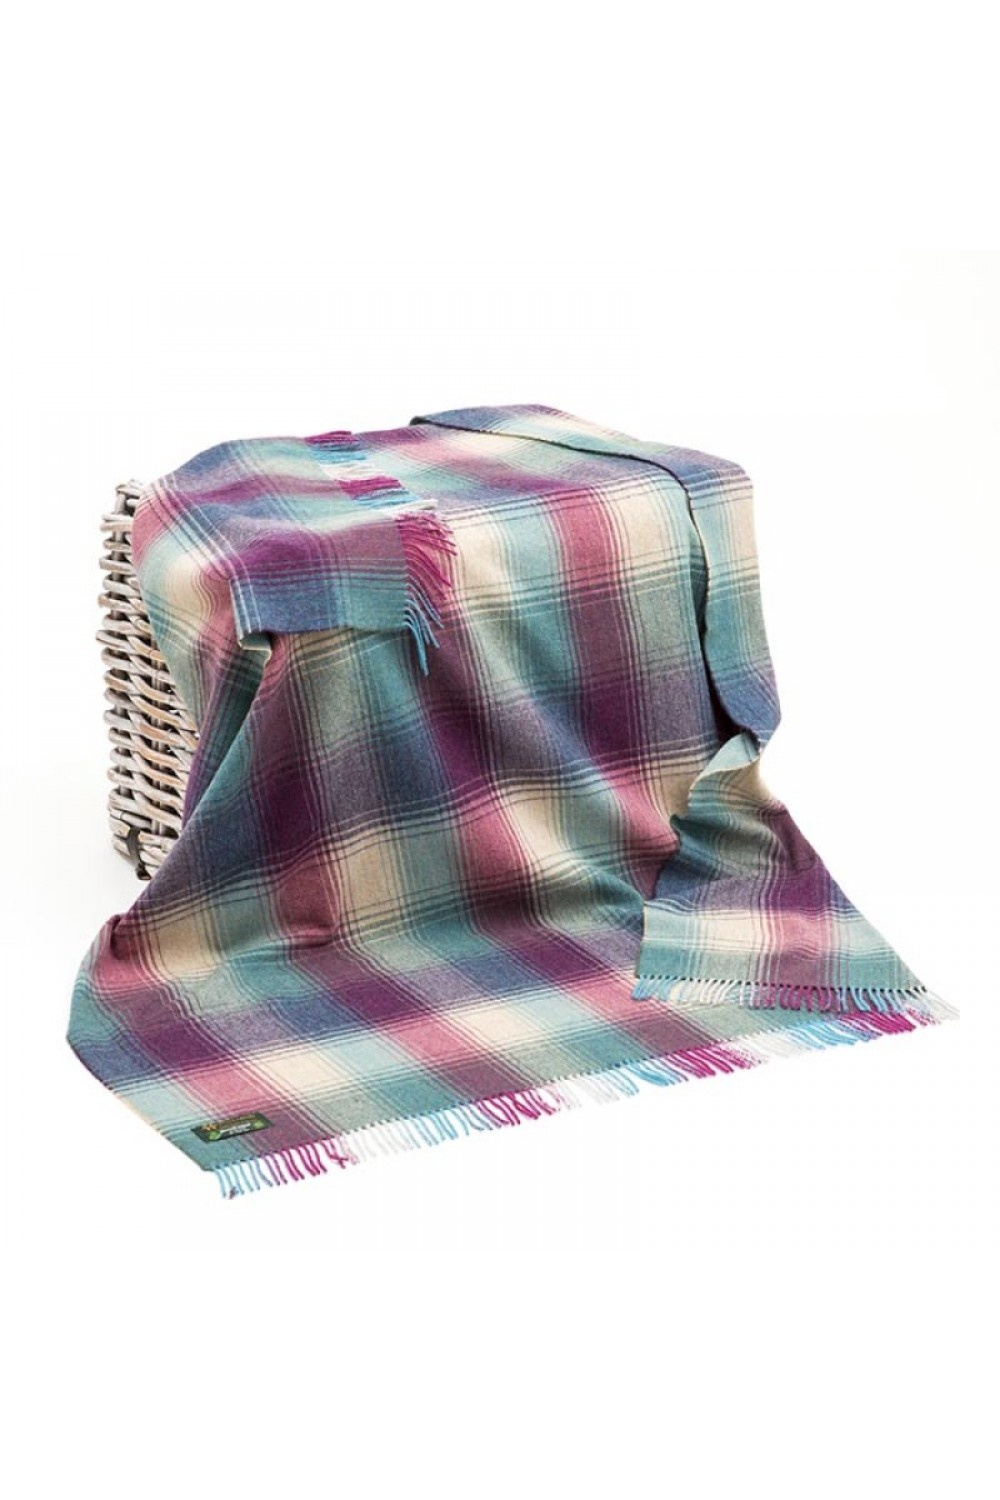 Heather Plaid Lambswool Throw